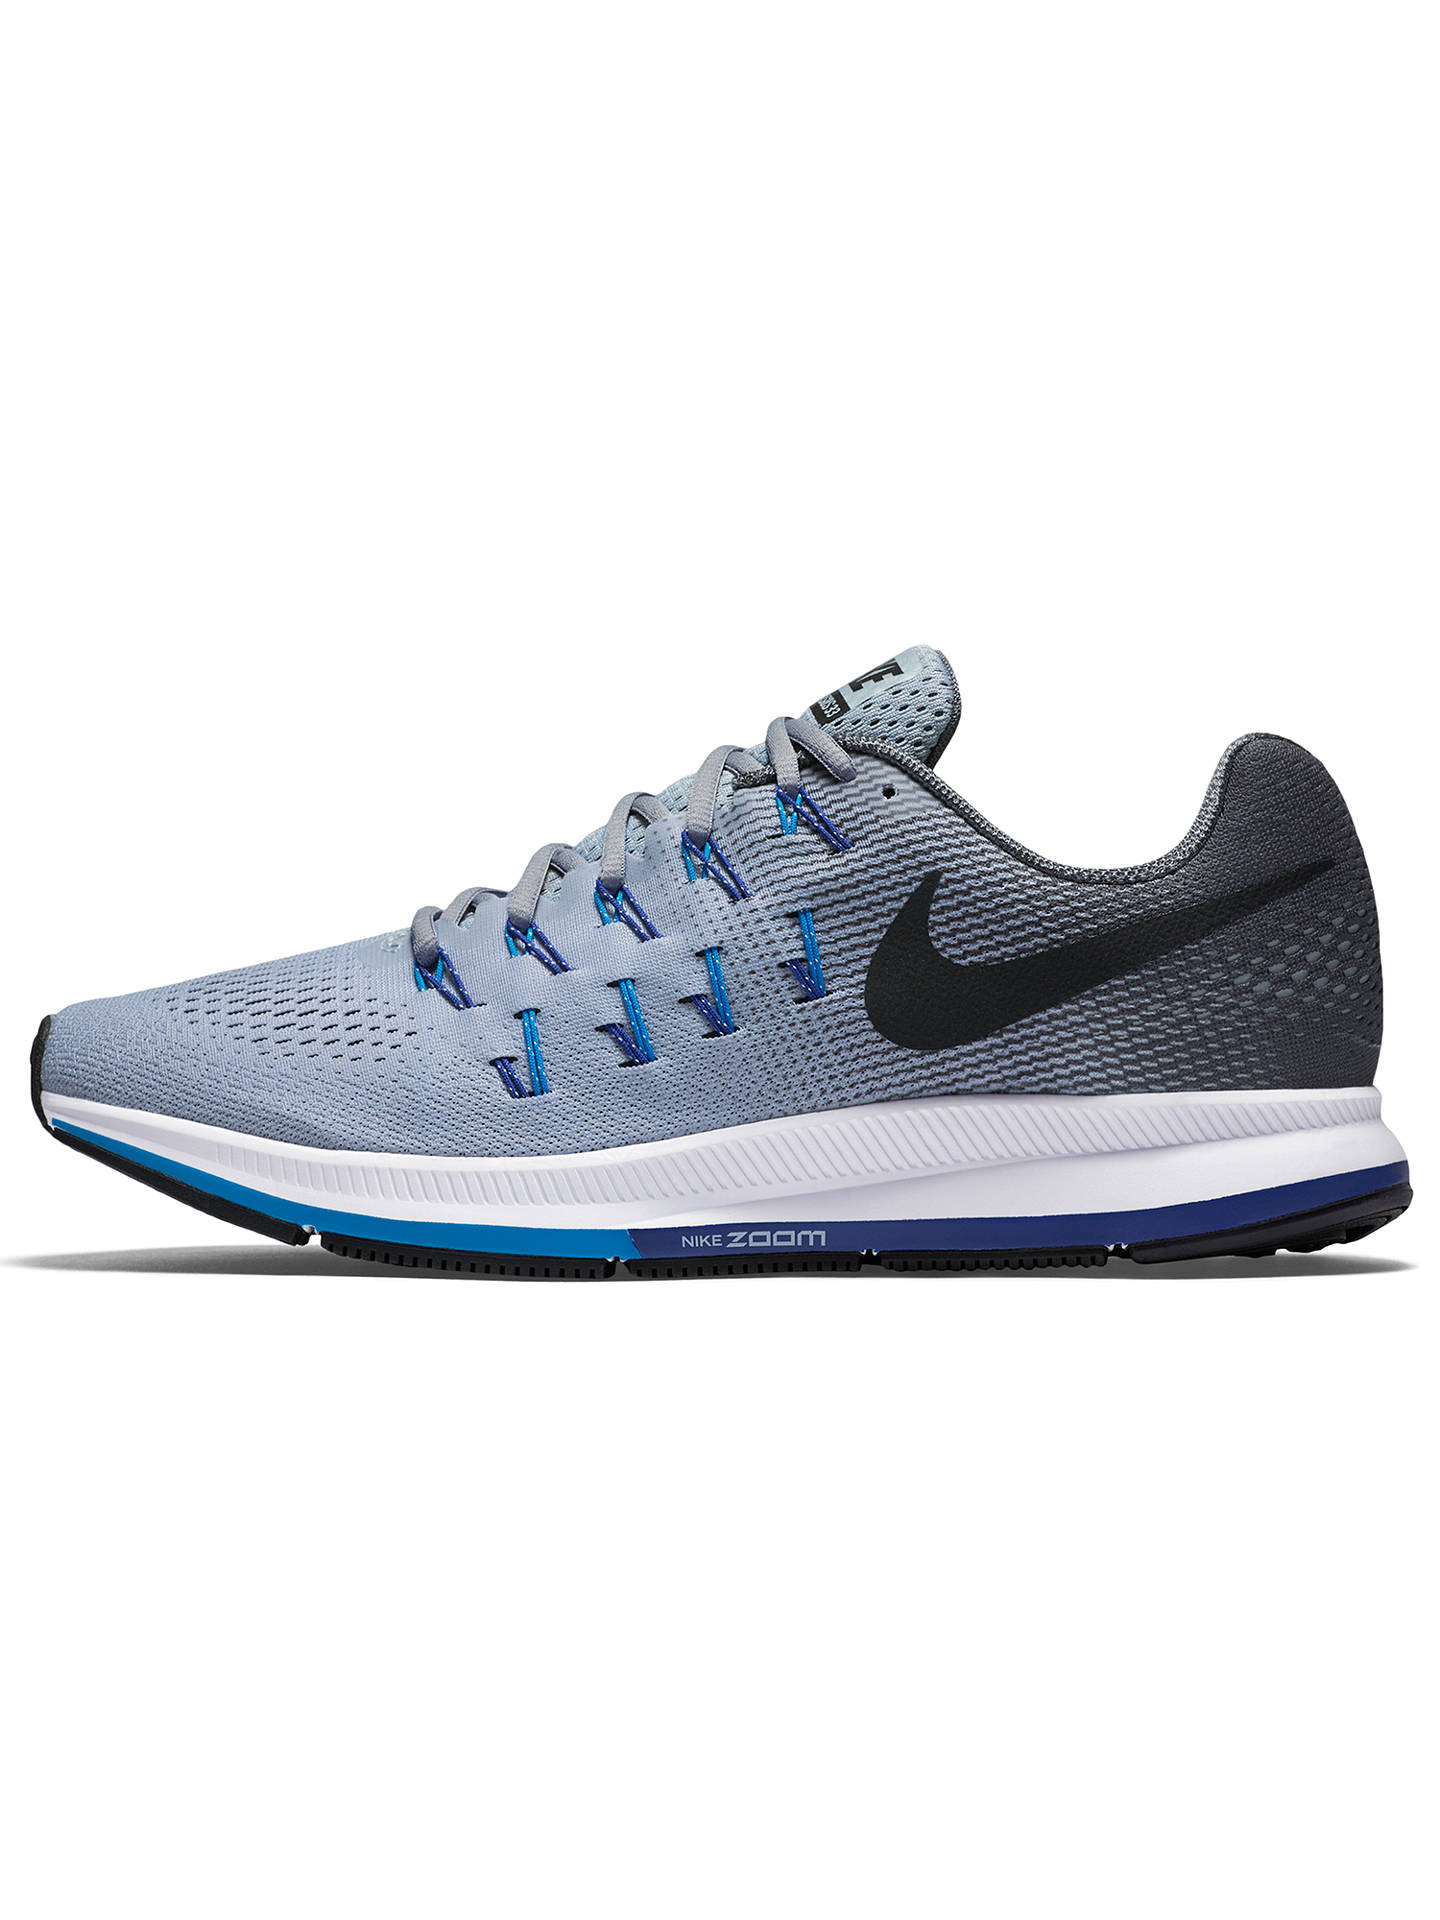 e0e5f33128d3f ... Buy Nike Air Zoom Pegasus 33 Men s Running Shoes